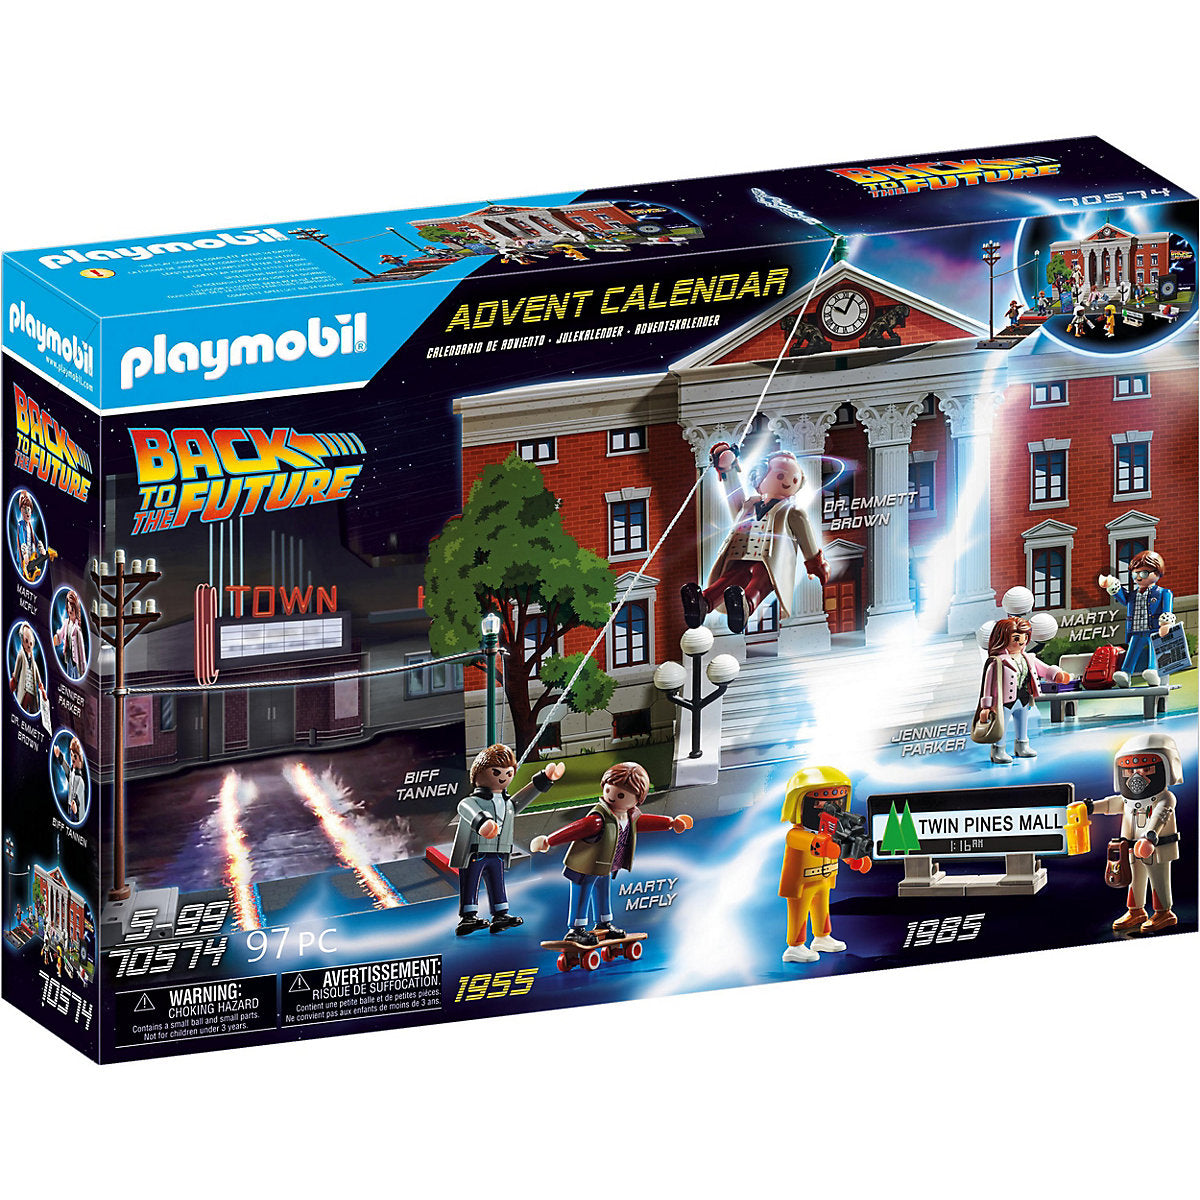 Playmobil Back to the future Adventskalender